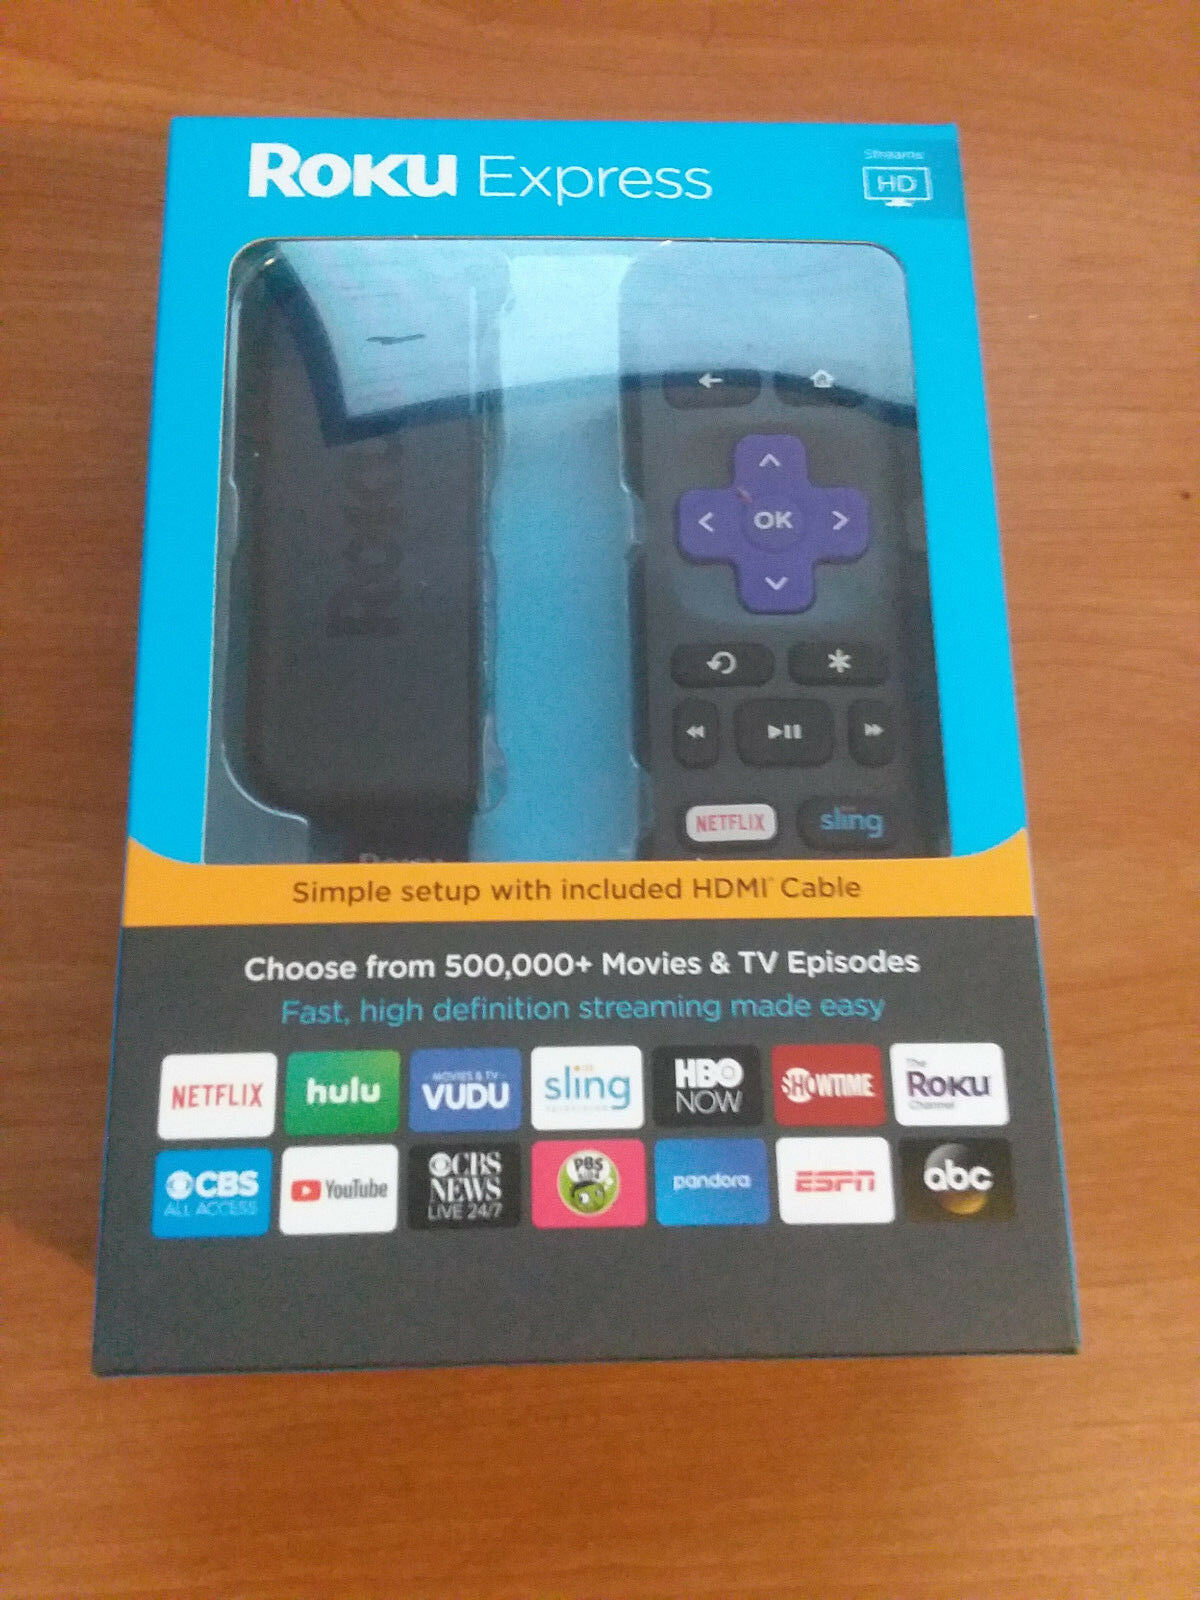 ROKU EXPRESS 3900RW STREAMING MEDIA PLAYER (BLACK) LATEST MODEL NEW IN BOX Featured